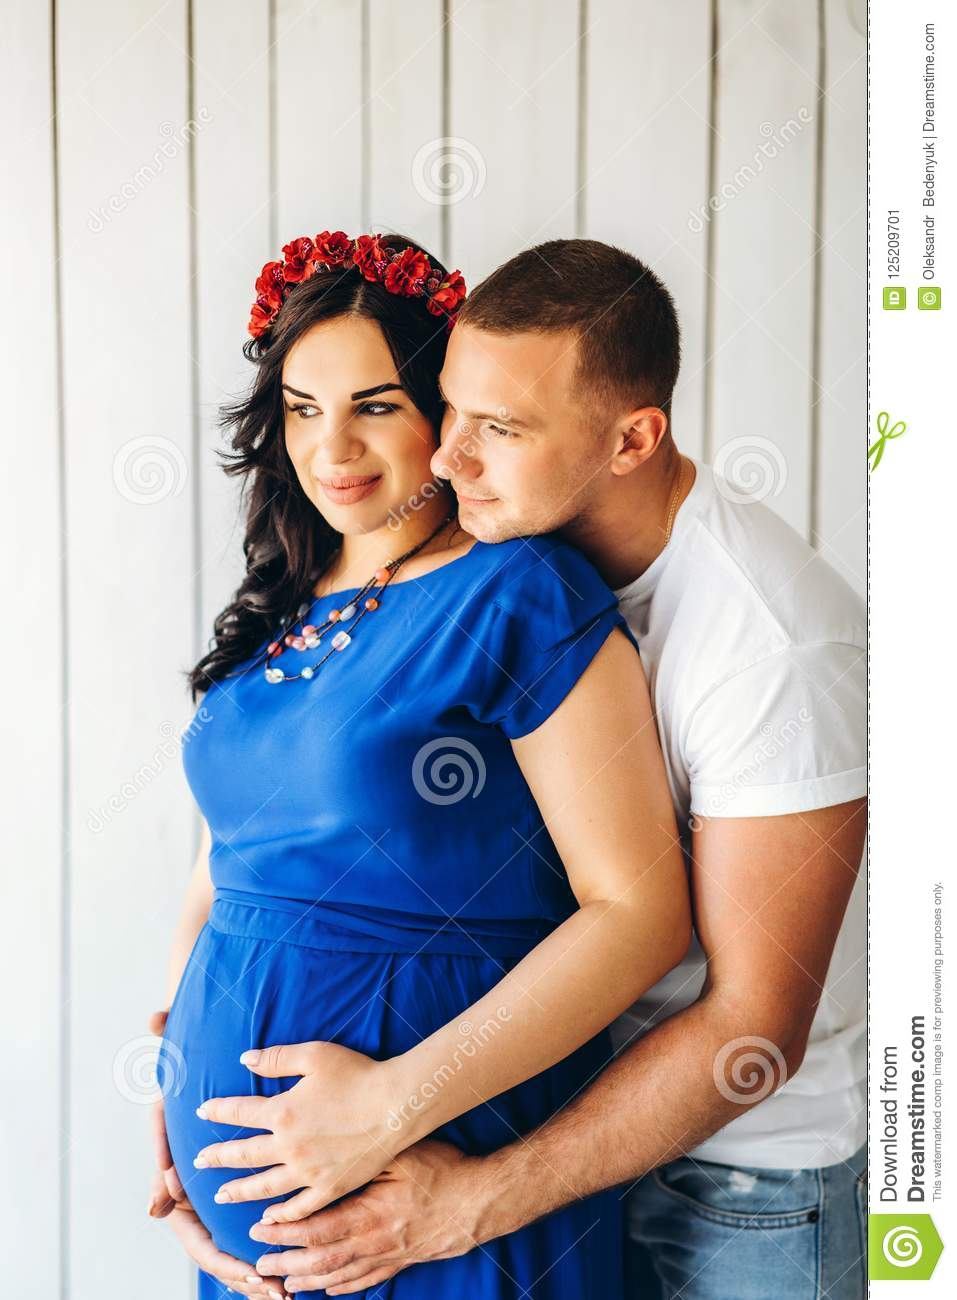 daf57f026ee50 Cute Pregnant Woman With Her Happy Husband Stock Image - Image of ...